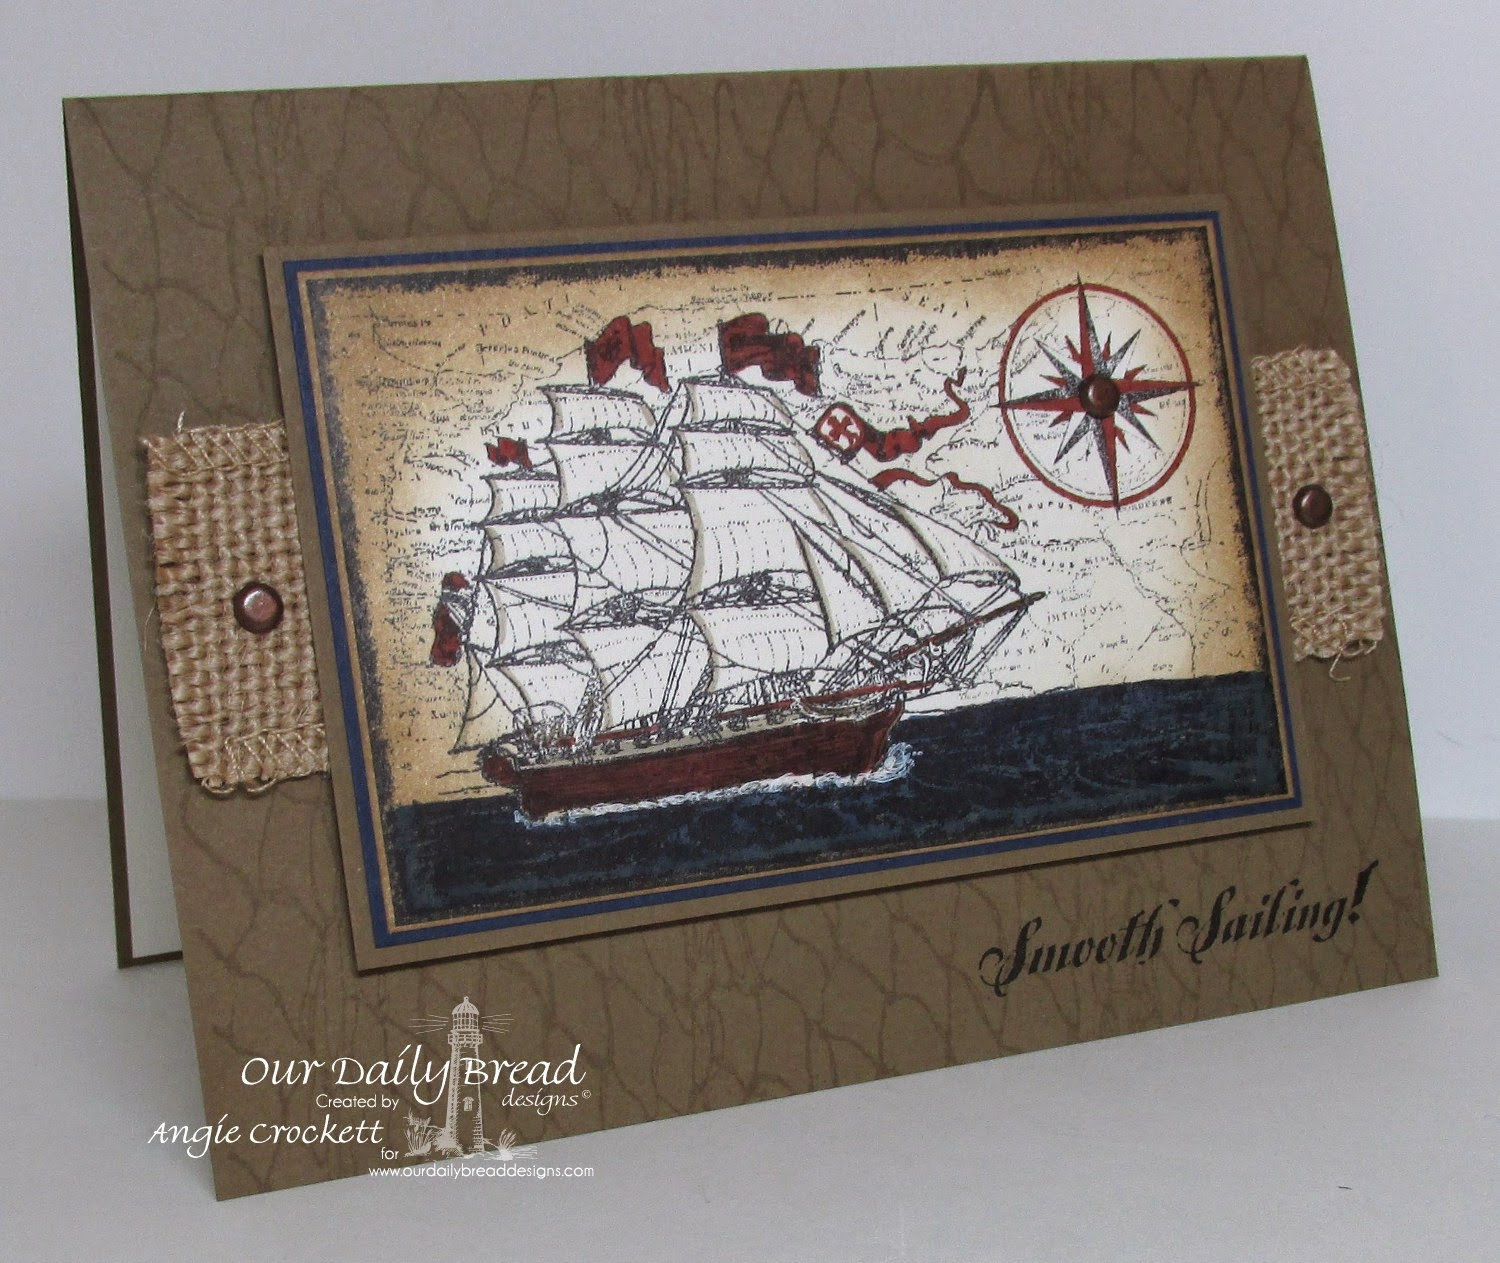 ODBD Surging Sea, ODBD Smooth Sailing, ODBD Fishing Net Background, Card Designer Angie Crockett